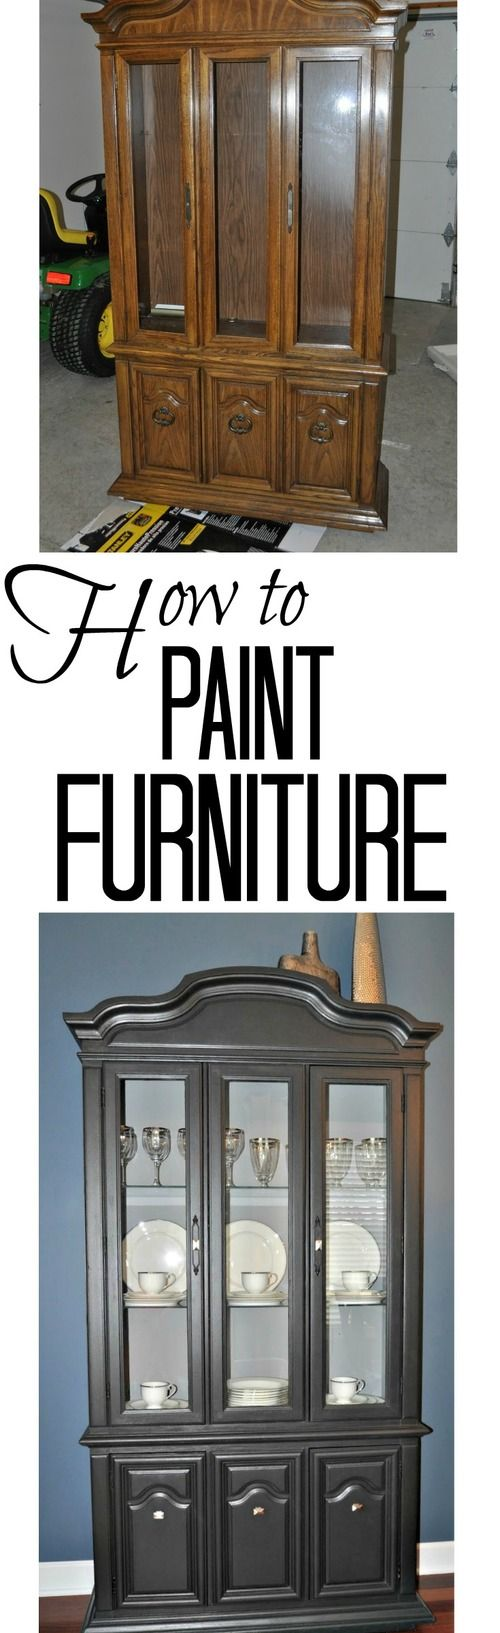 25 Best China Cabinet Painted Ideas On Pinterest Painted China Hutch Refinished China